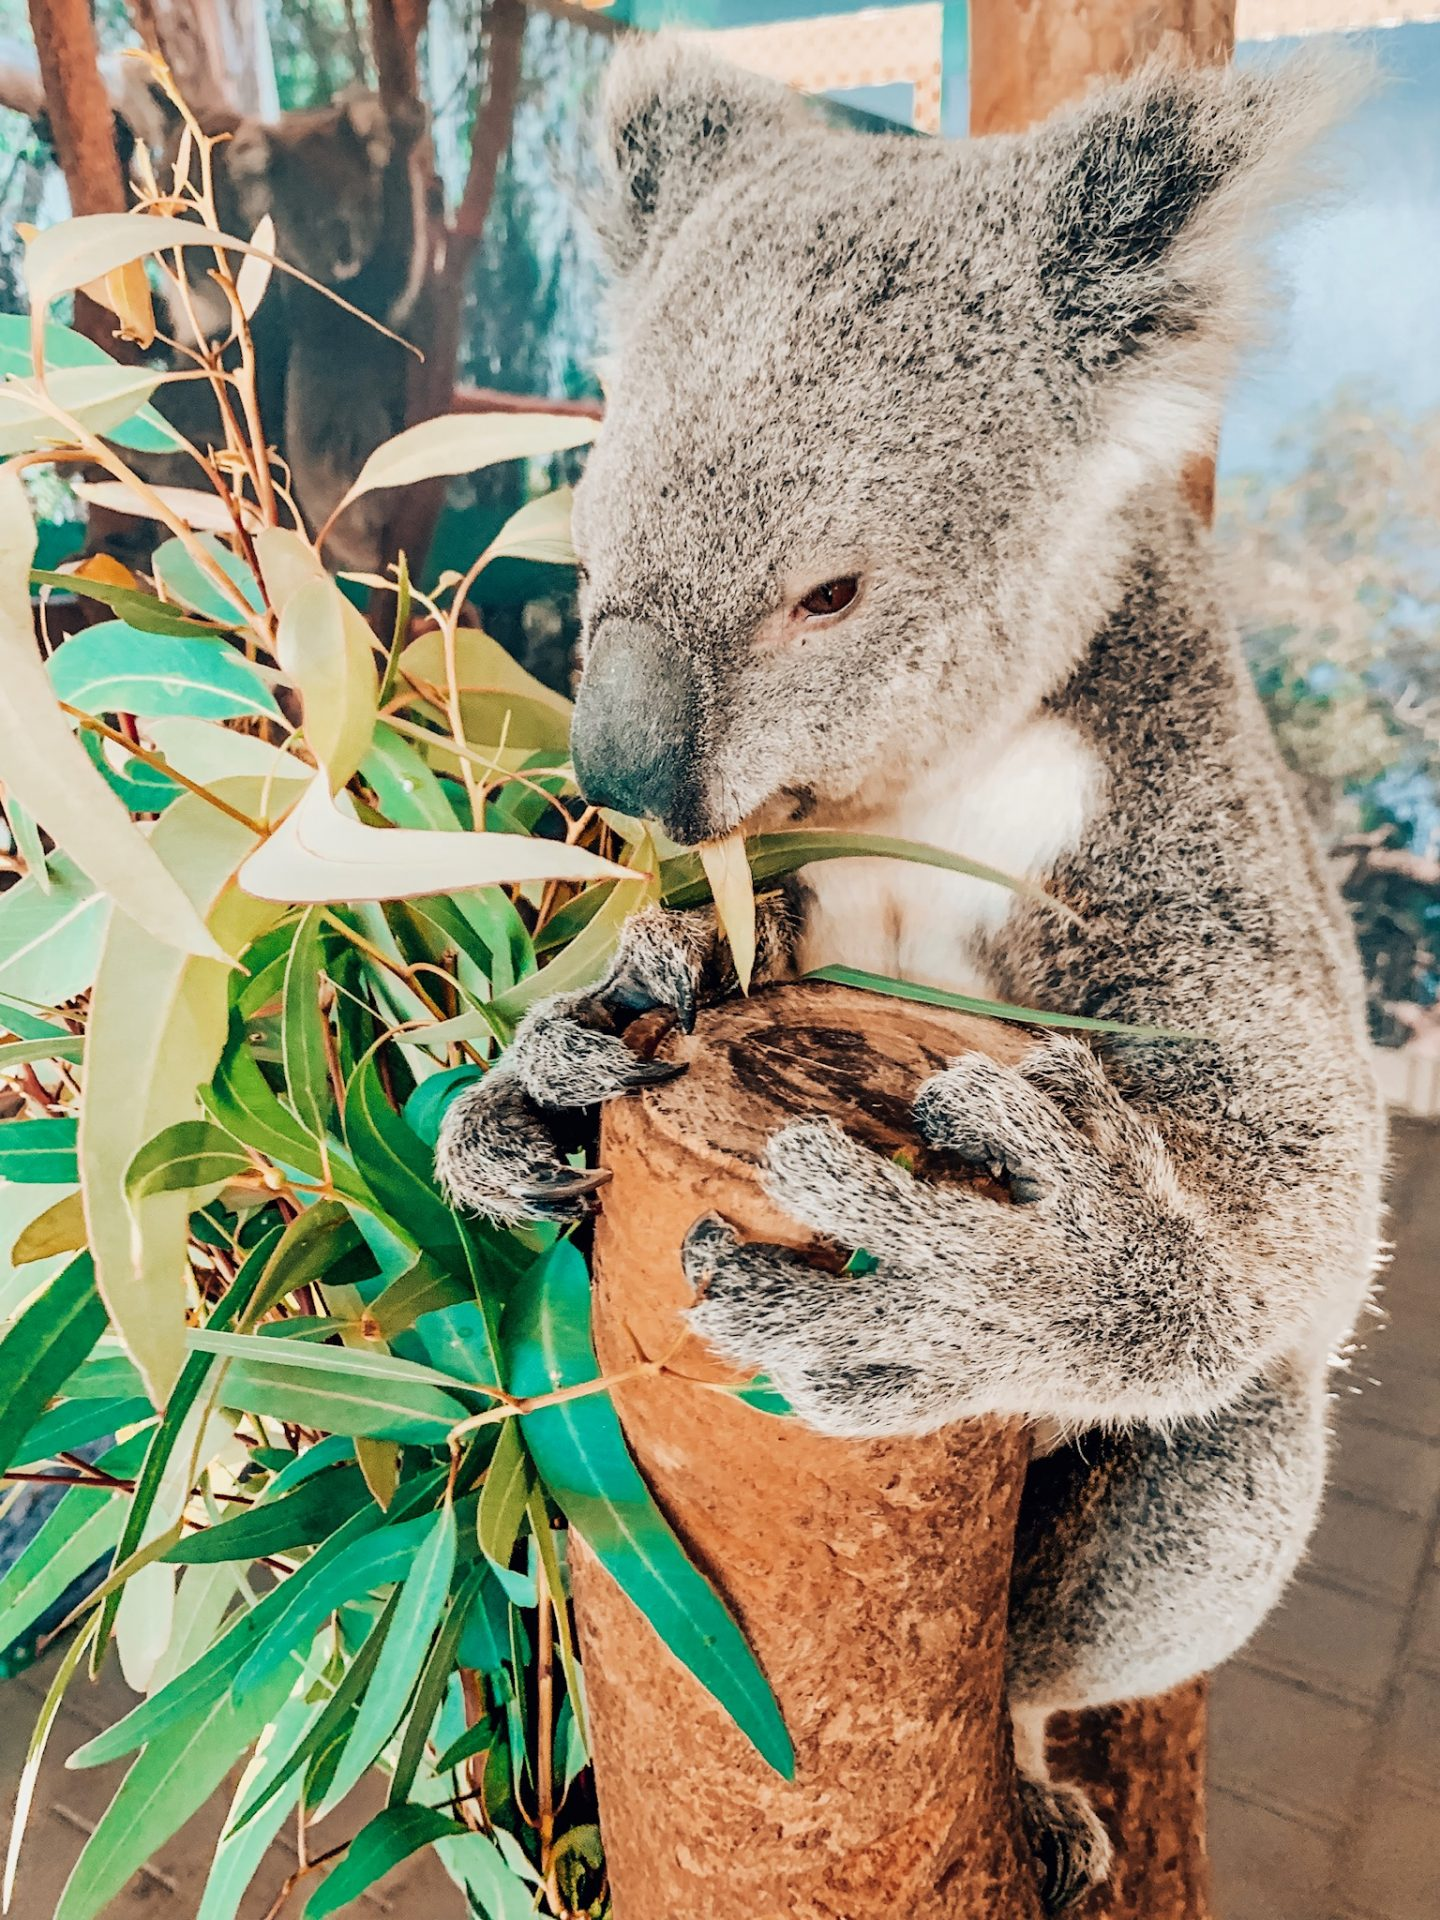 Meeting a koala at an animal sanctuary in Perth!